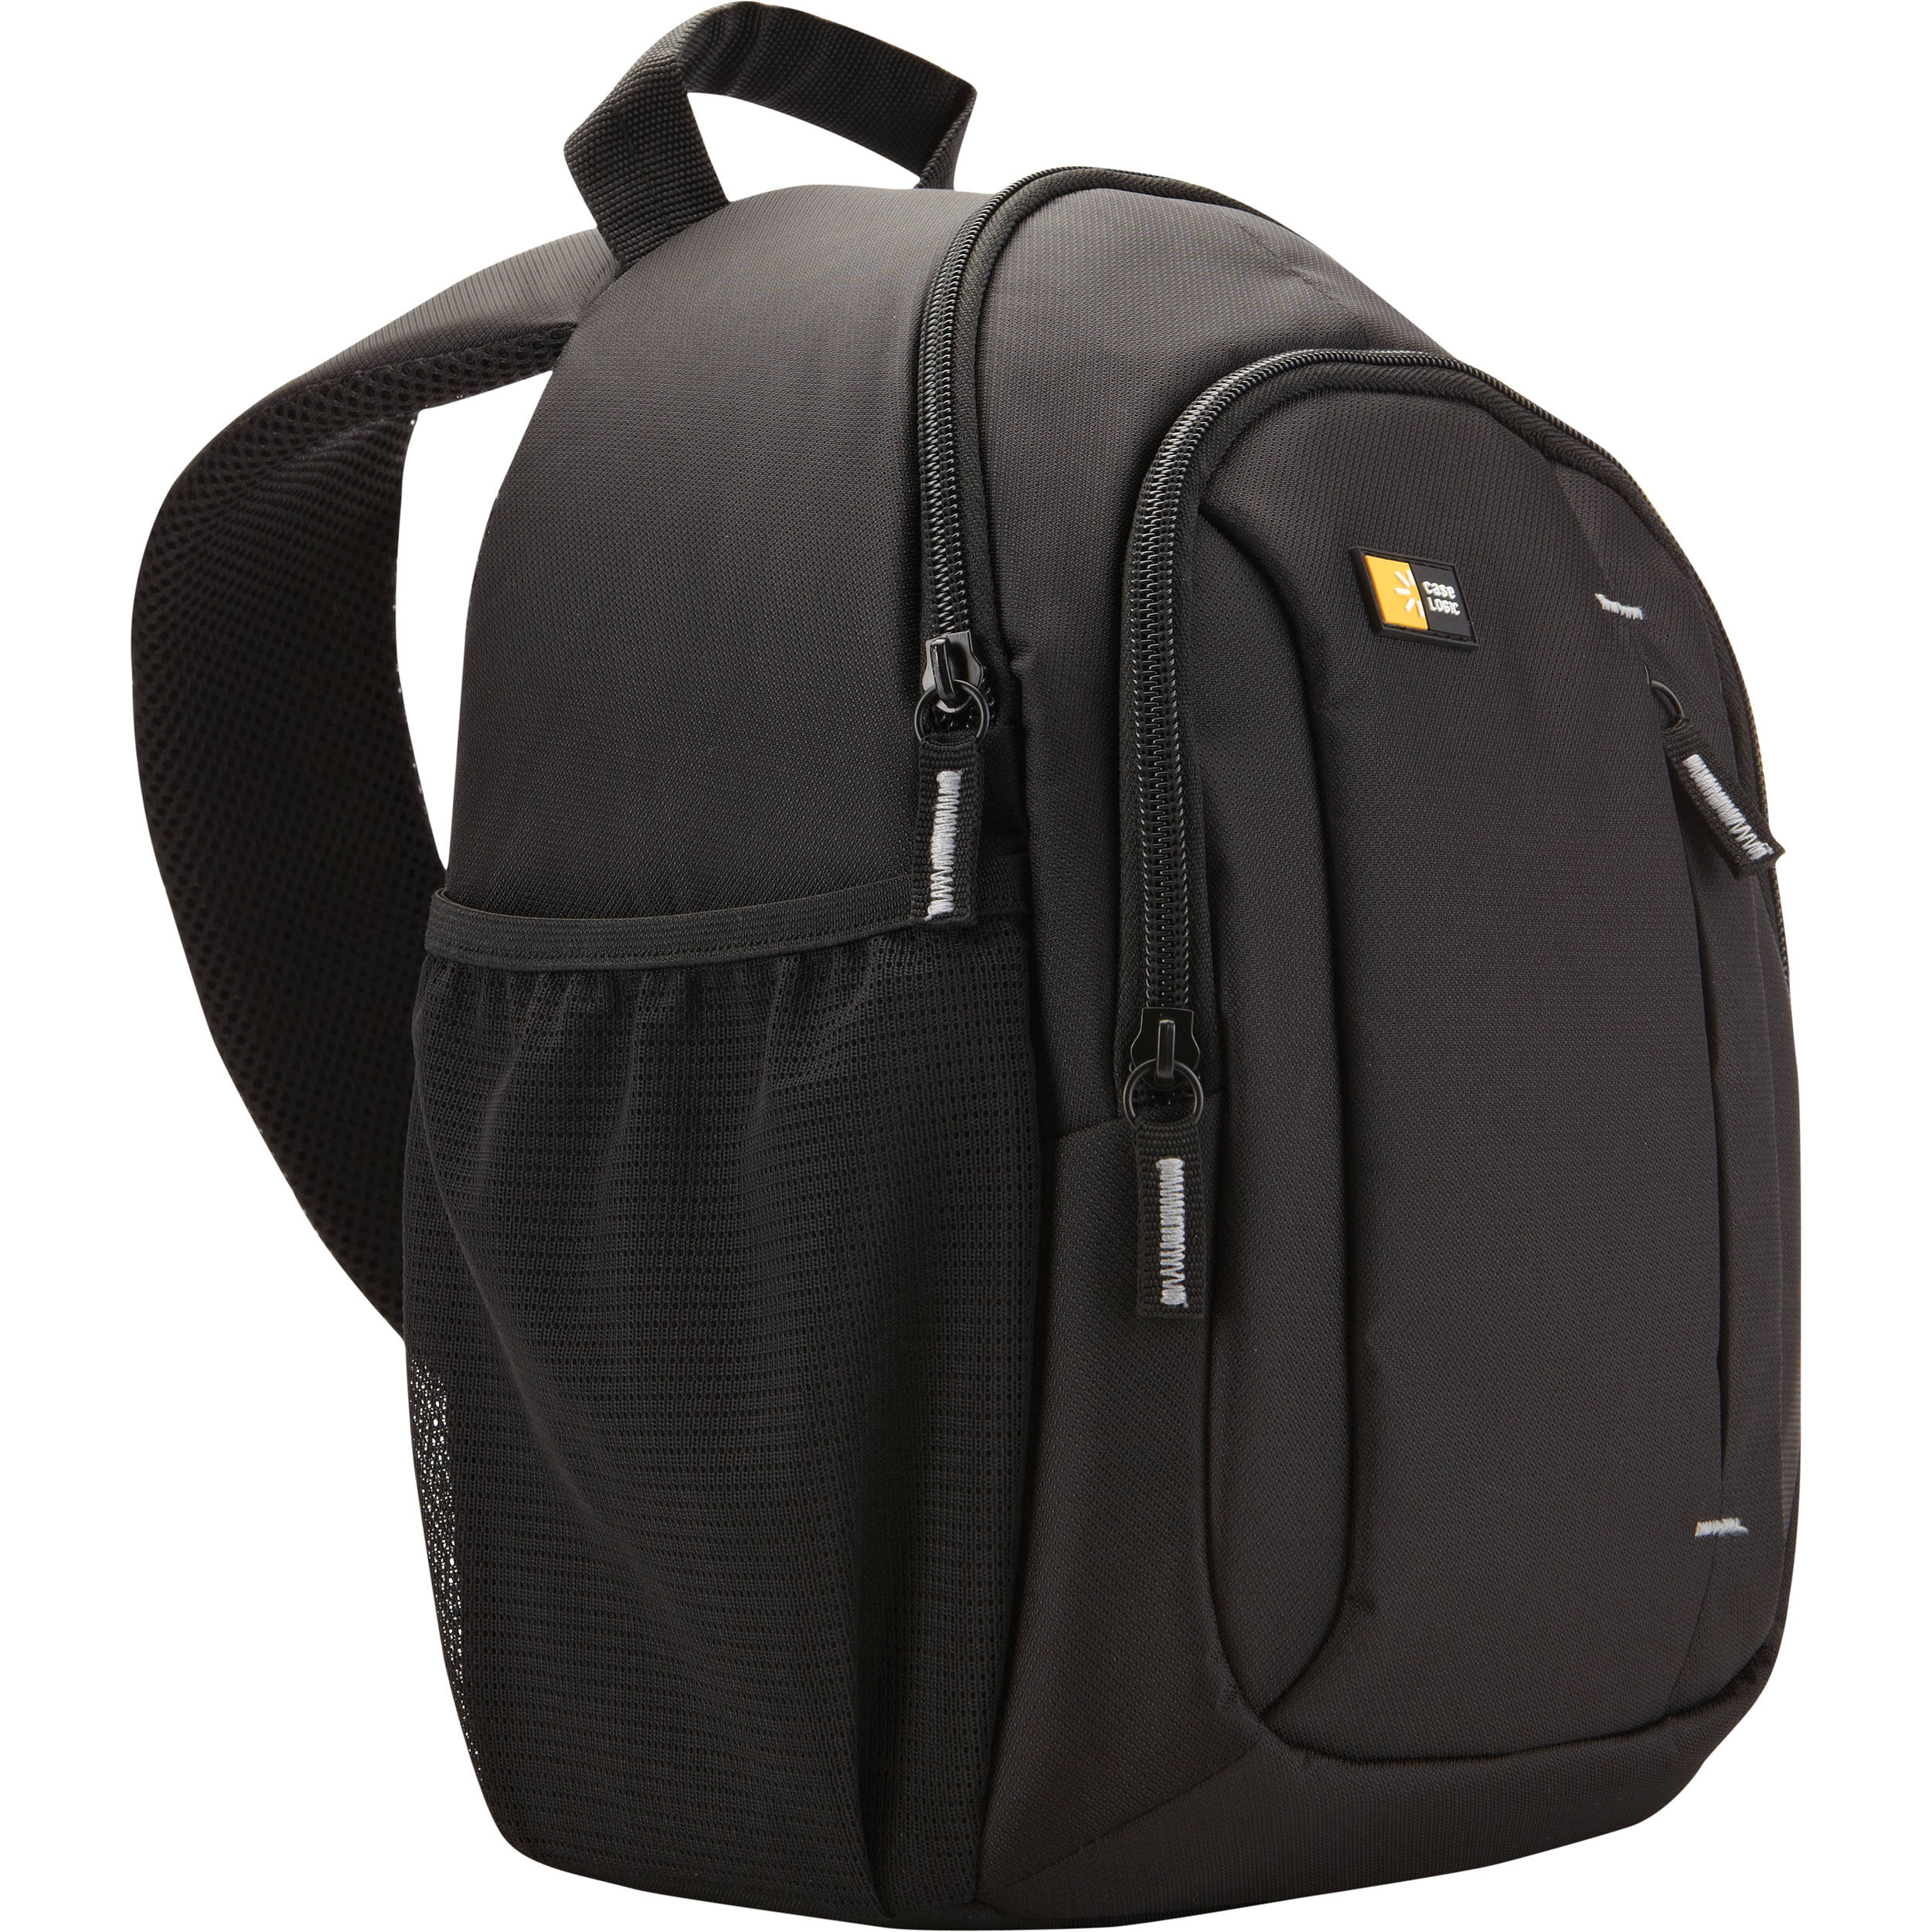 Case Logic Tbc 410 Dslr Camera Sling Black